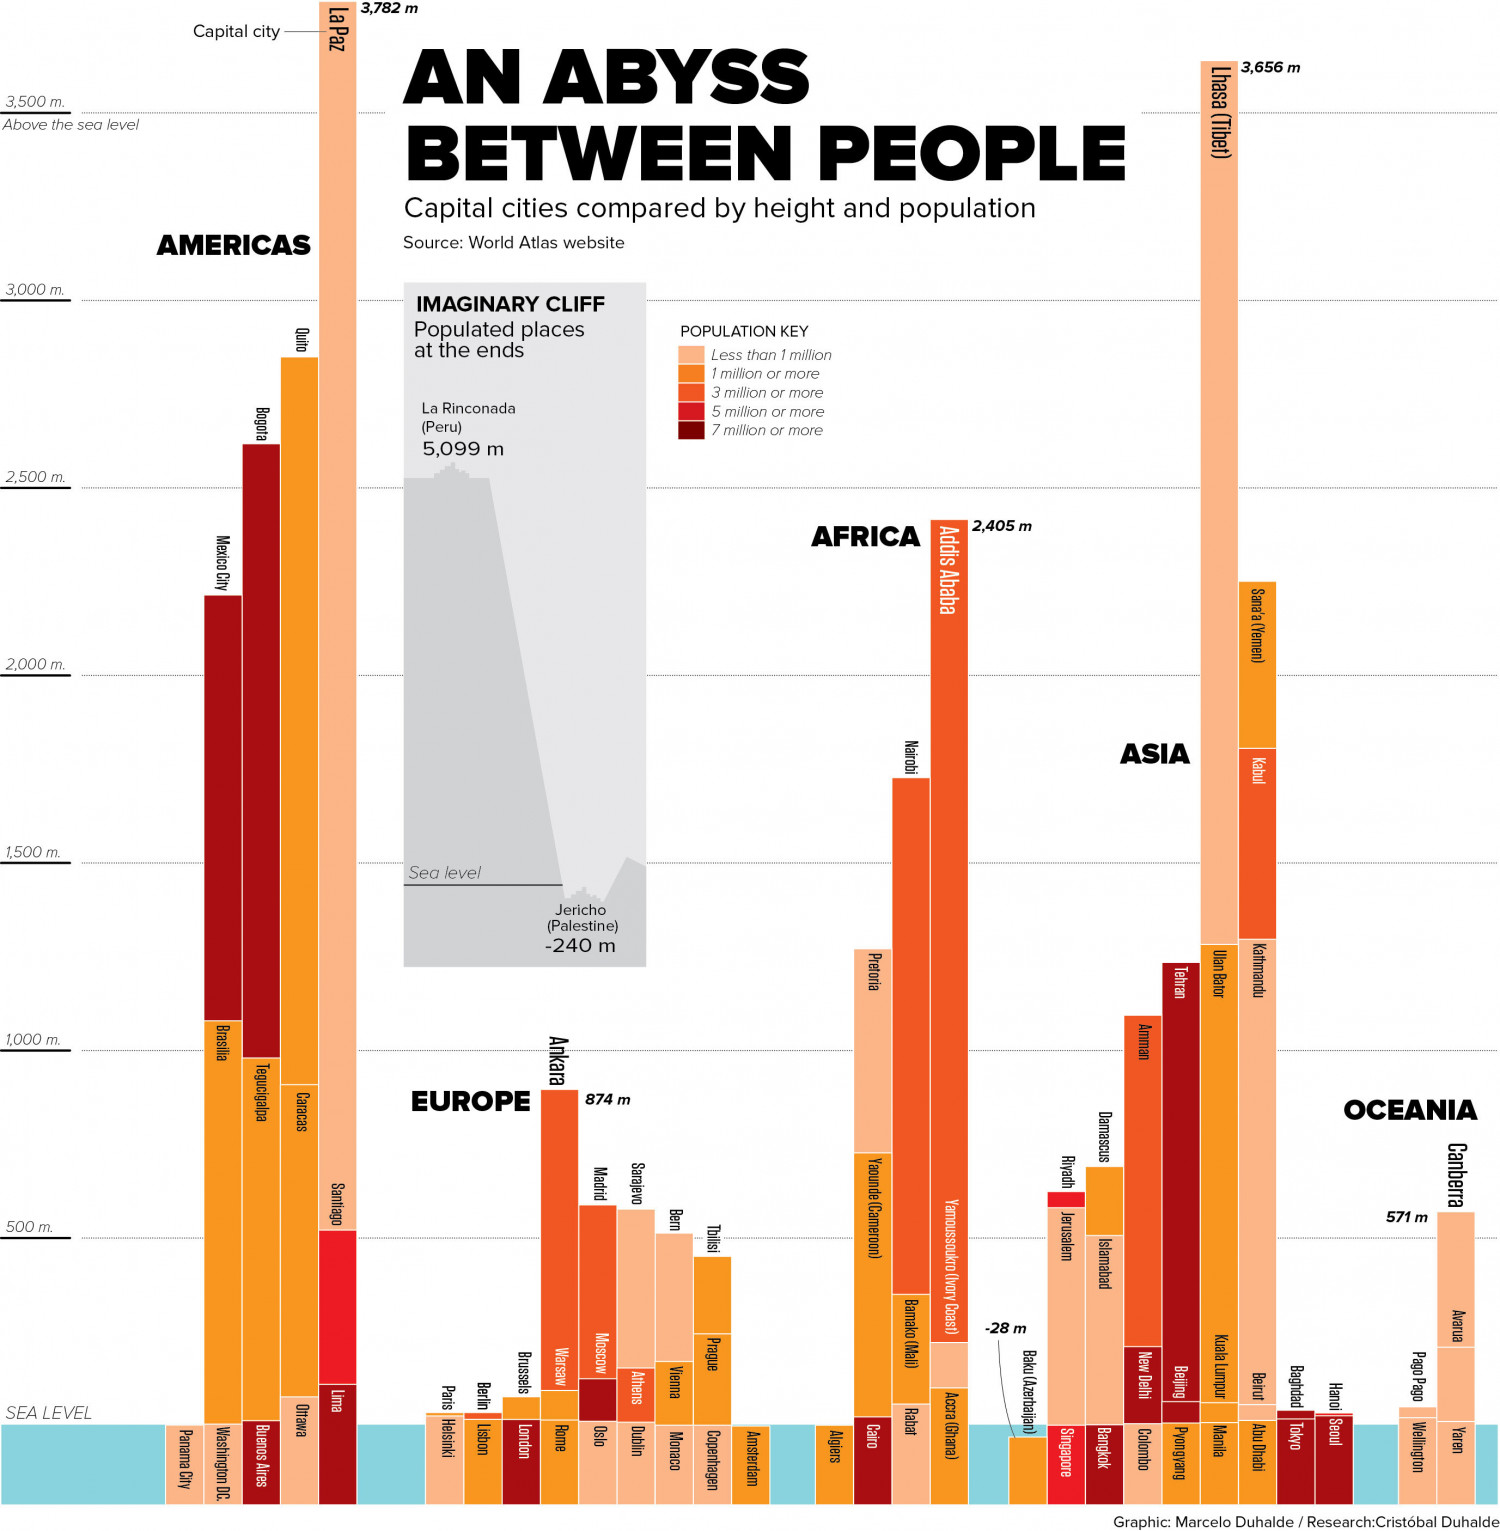 An abbys between people Infographic